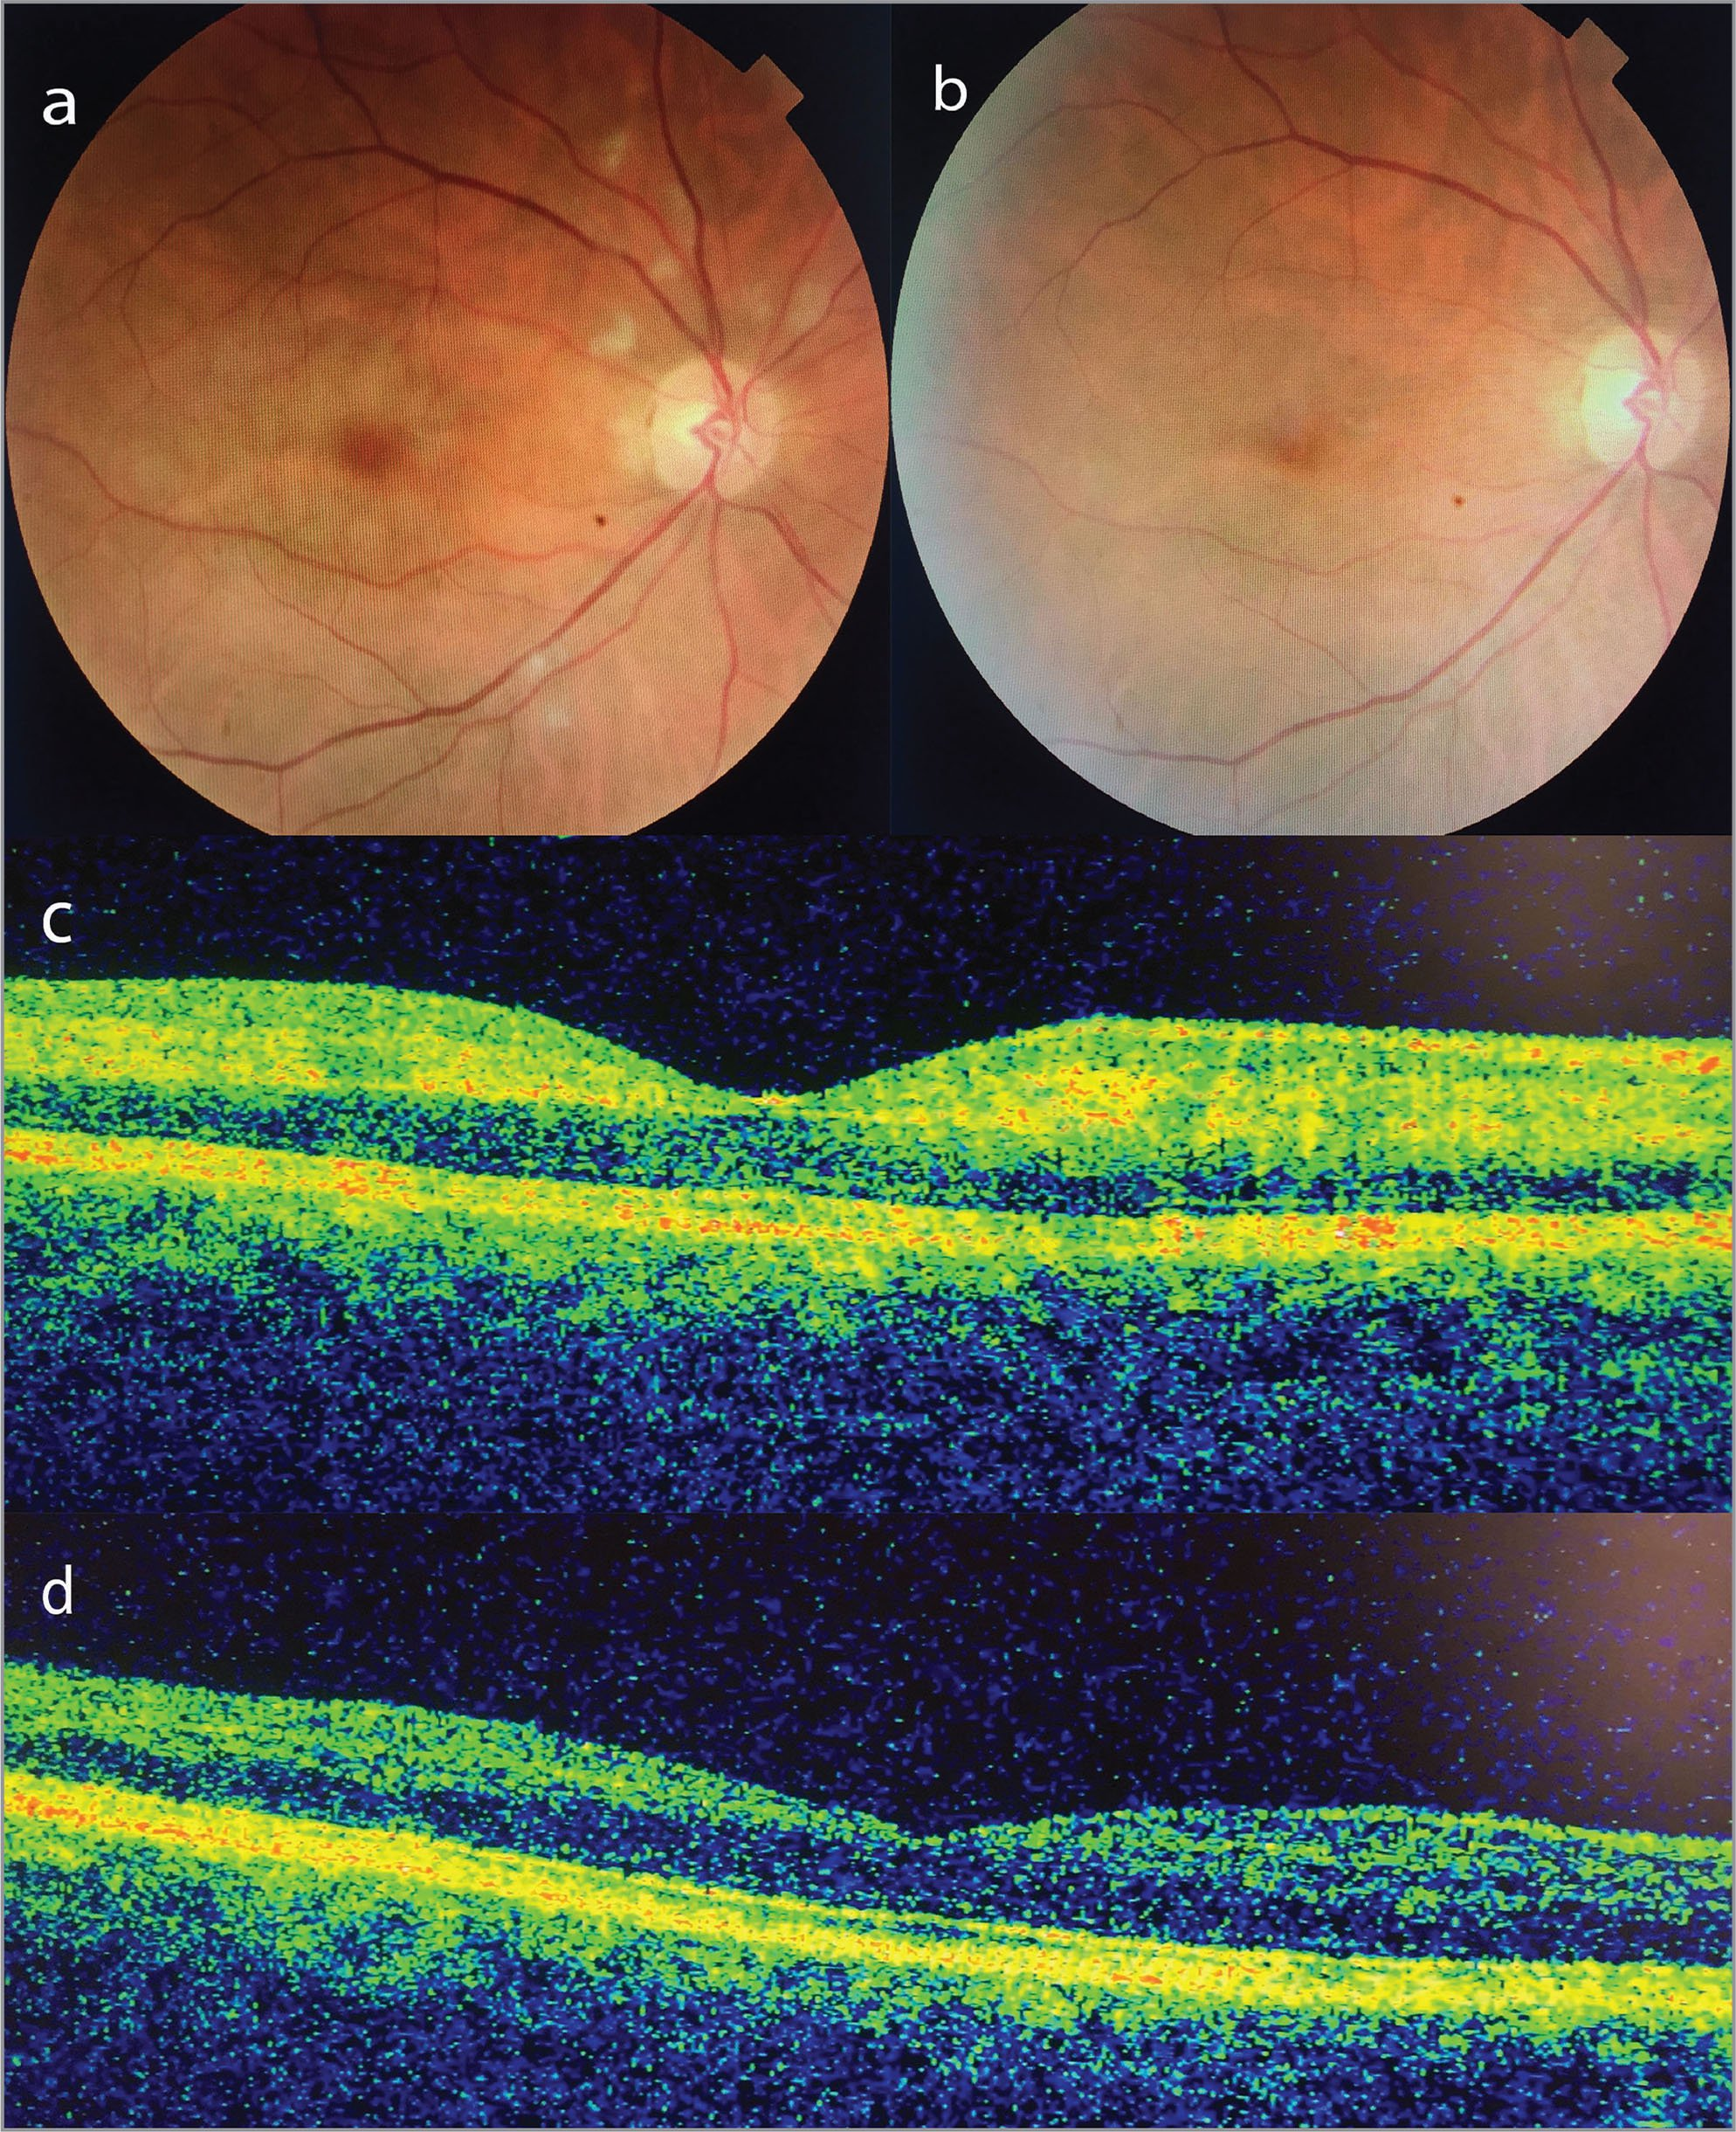 Fundus photograph of the right eye of 63-year-old male patient (Case 2) with Purtscher-like retinopathy at presentation shows scattered cotton-wool spots and parafoveal mild, whitish-appearing retina (a). Spectral-domain optical coherence tomography (SD-OCT) scan demonstrates increased reflectivity in the inner plexiform, inner nuclear, outer plexiform, and outer nuclear layers in the parafoveal retina (c). Fundus examination was unremarkable (b), and SD-OCT macular scan shows controlled retinal atrophy at 12 months (d).